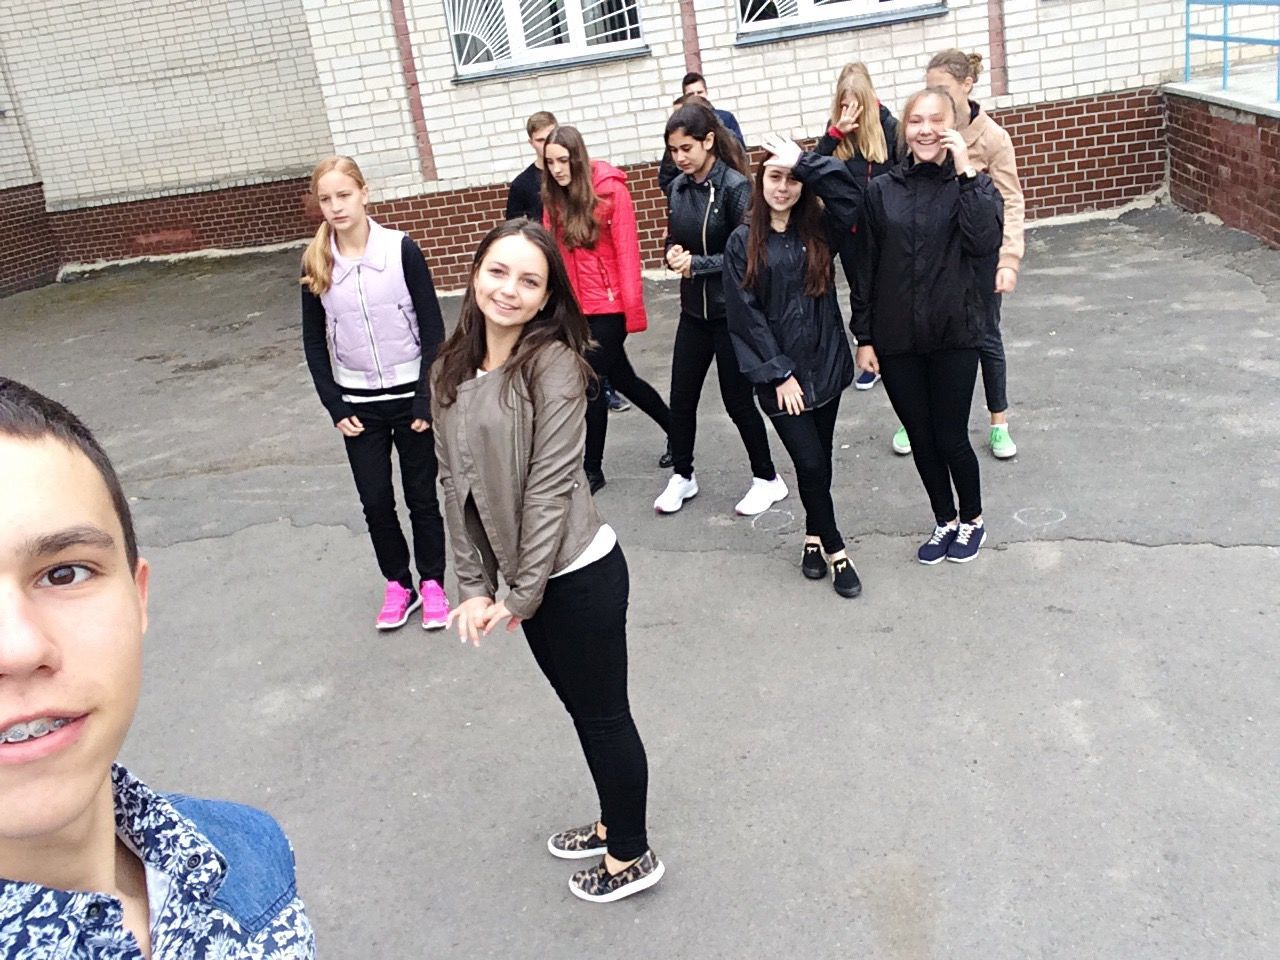 The Color Of School Lifestyles Leisure Activity Young Adult Casual Clothing Young Women Togetherness Friendship Full Length Person Bonding Standing Street Looking At Camera Day Well-dressed Outdoors Friend Handsome